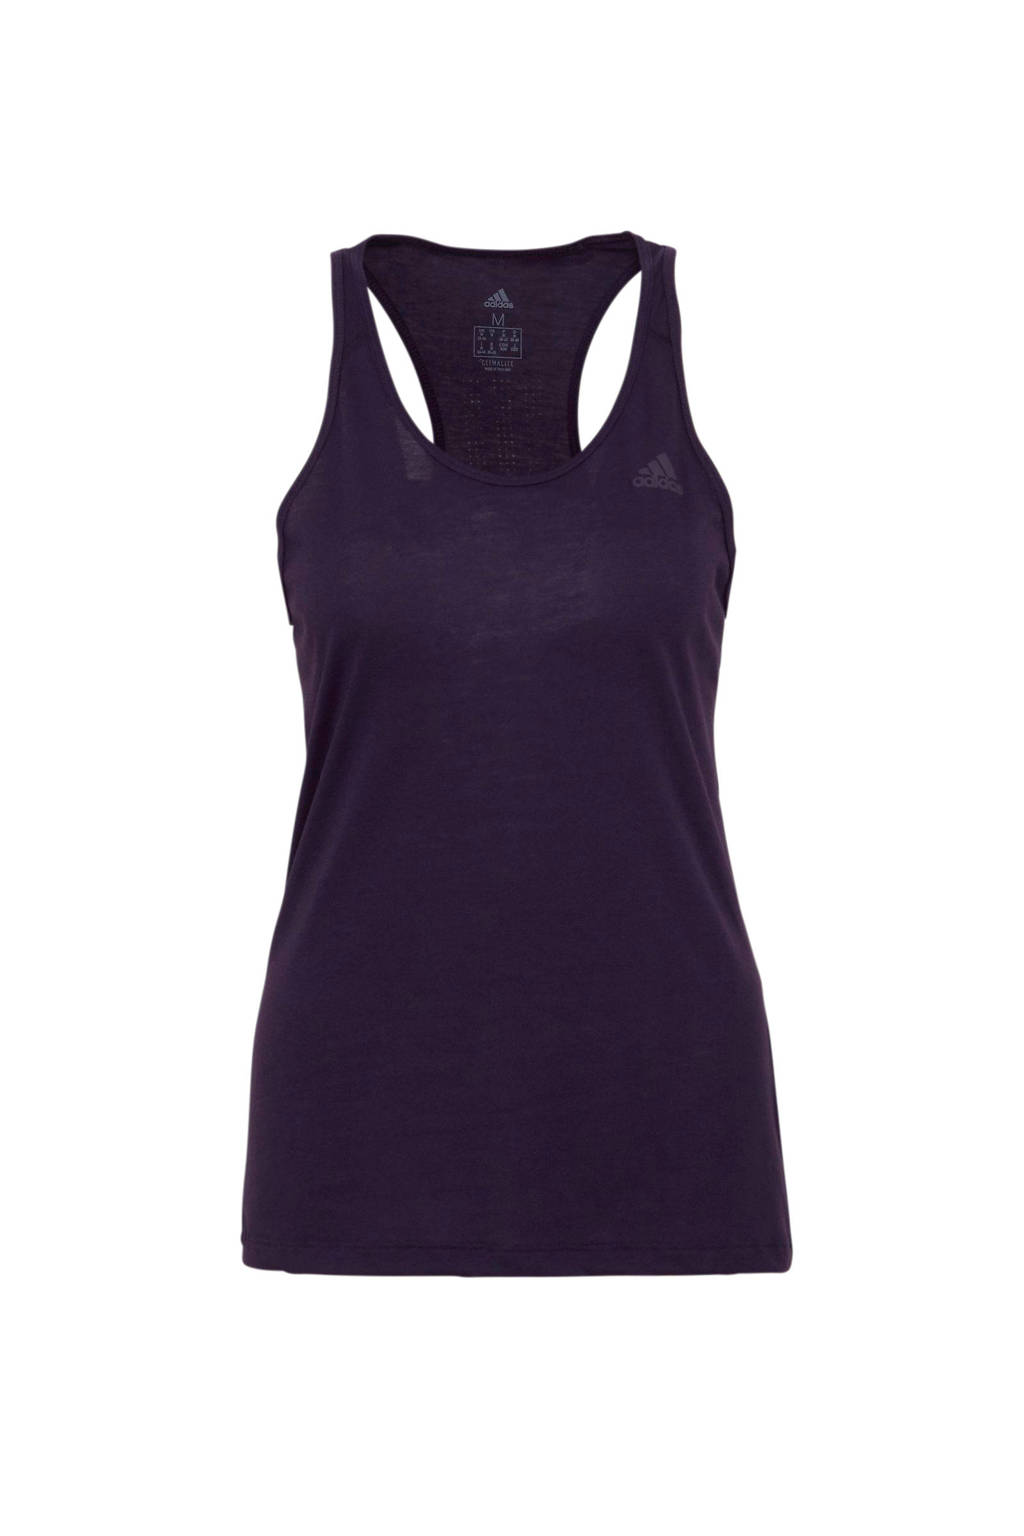 adidas performance sporttop paars, Paars